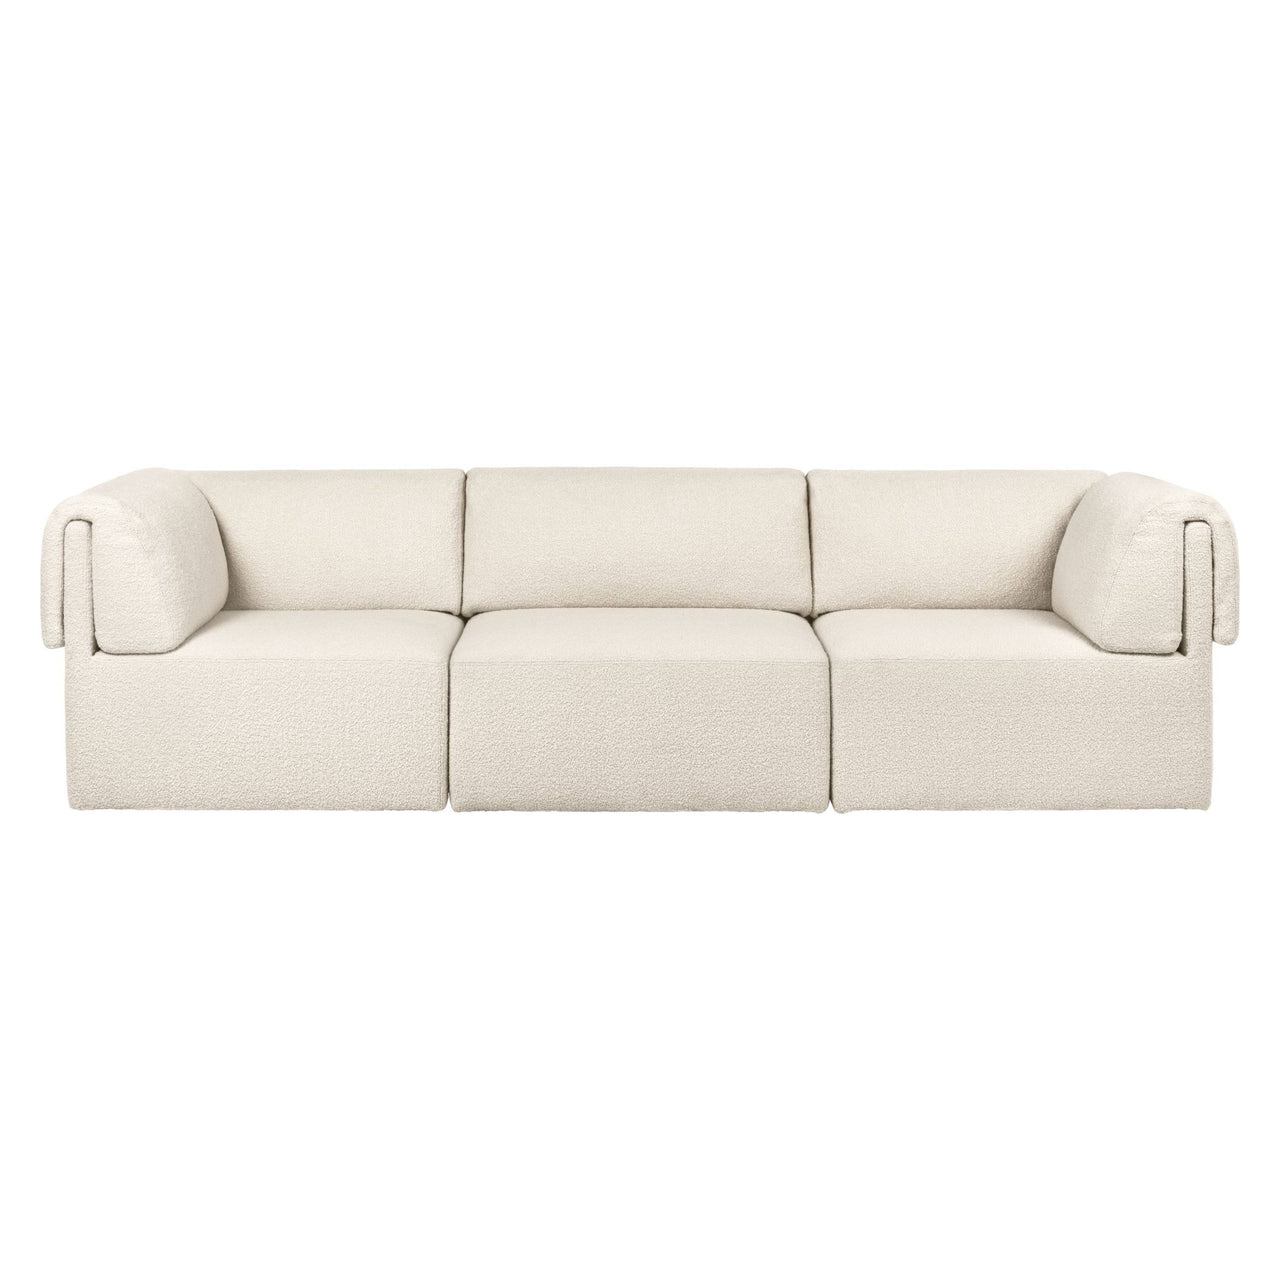 Wonder Sofa: 3 Seater with Armrest